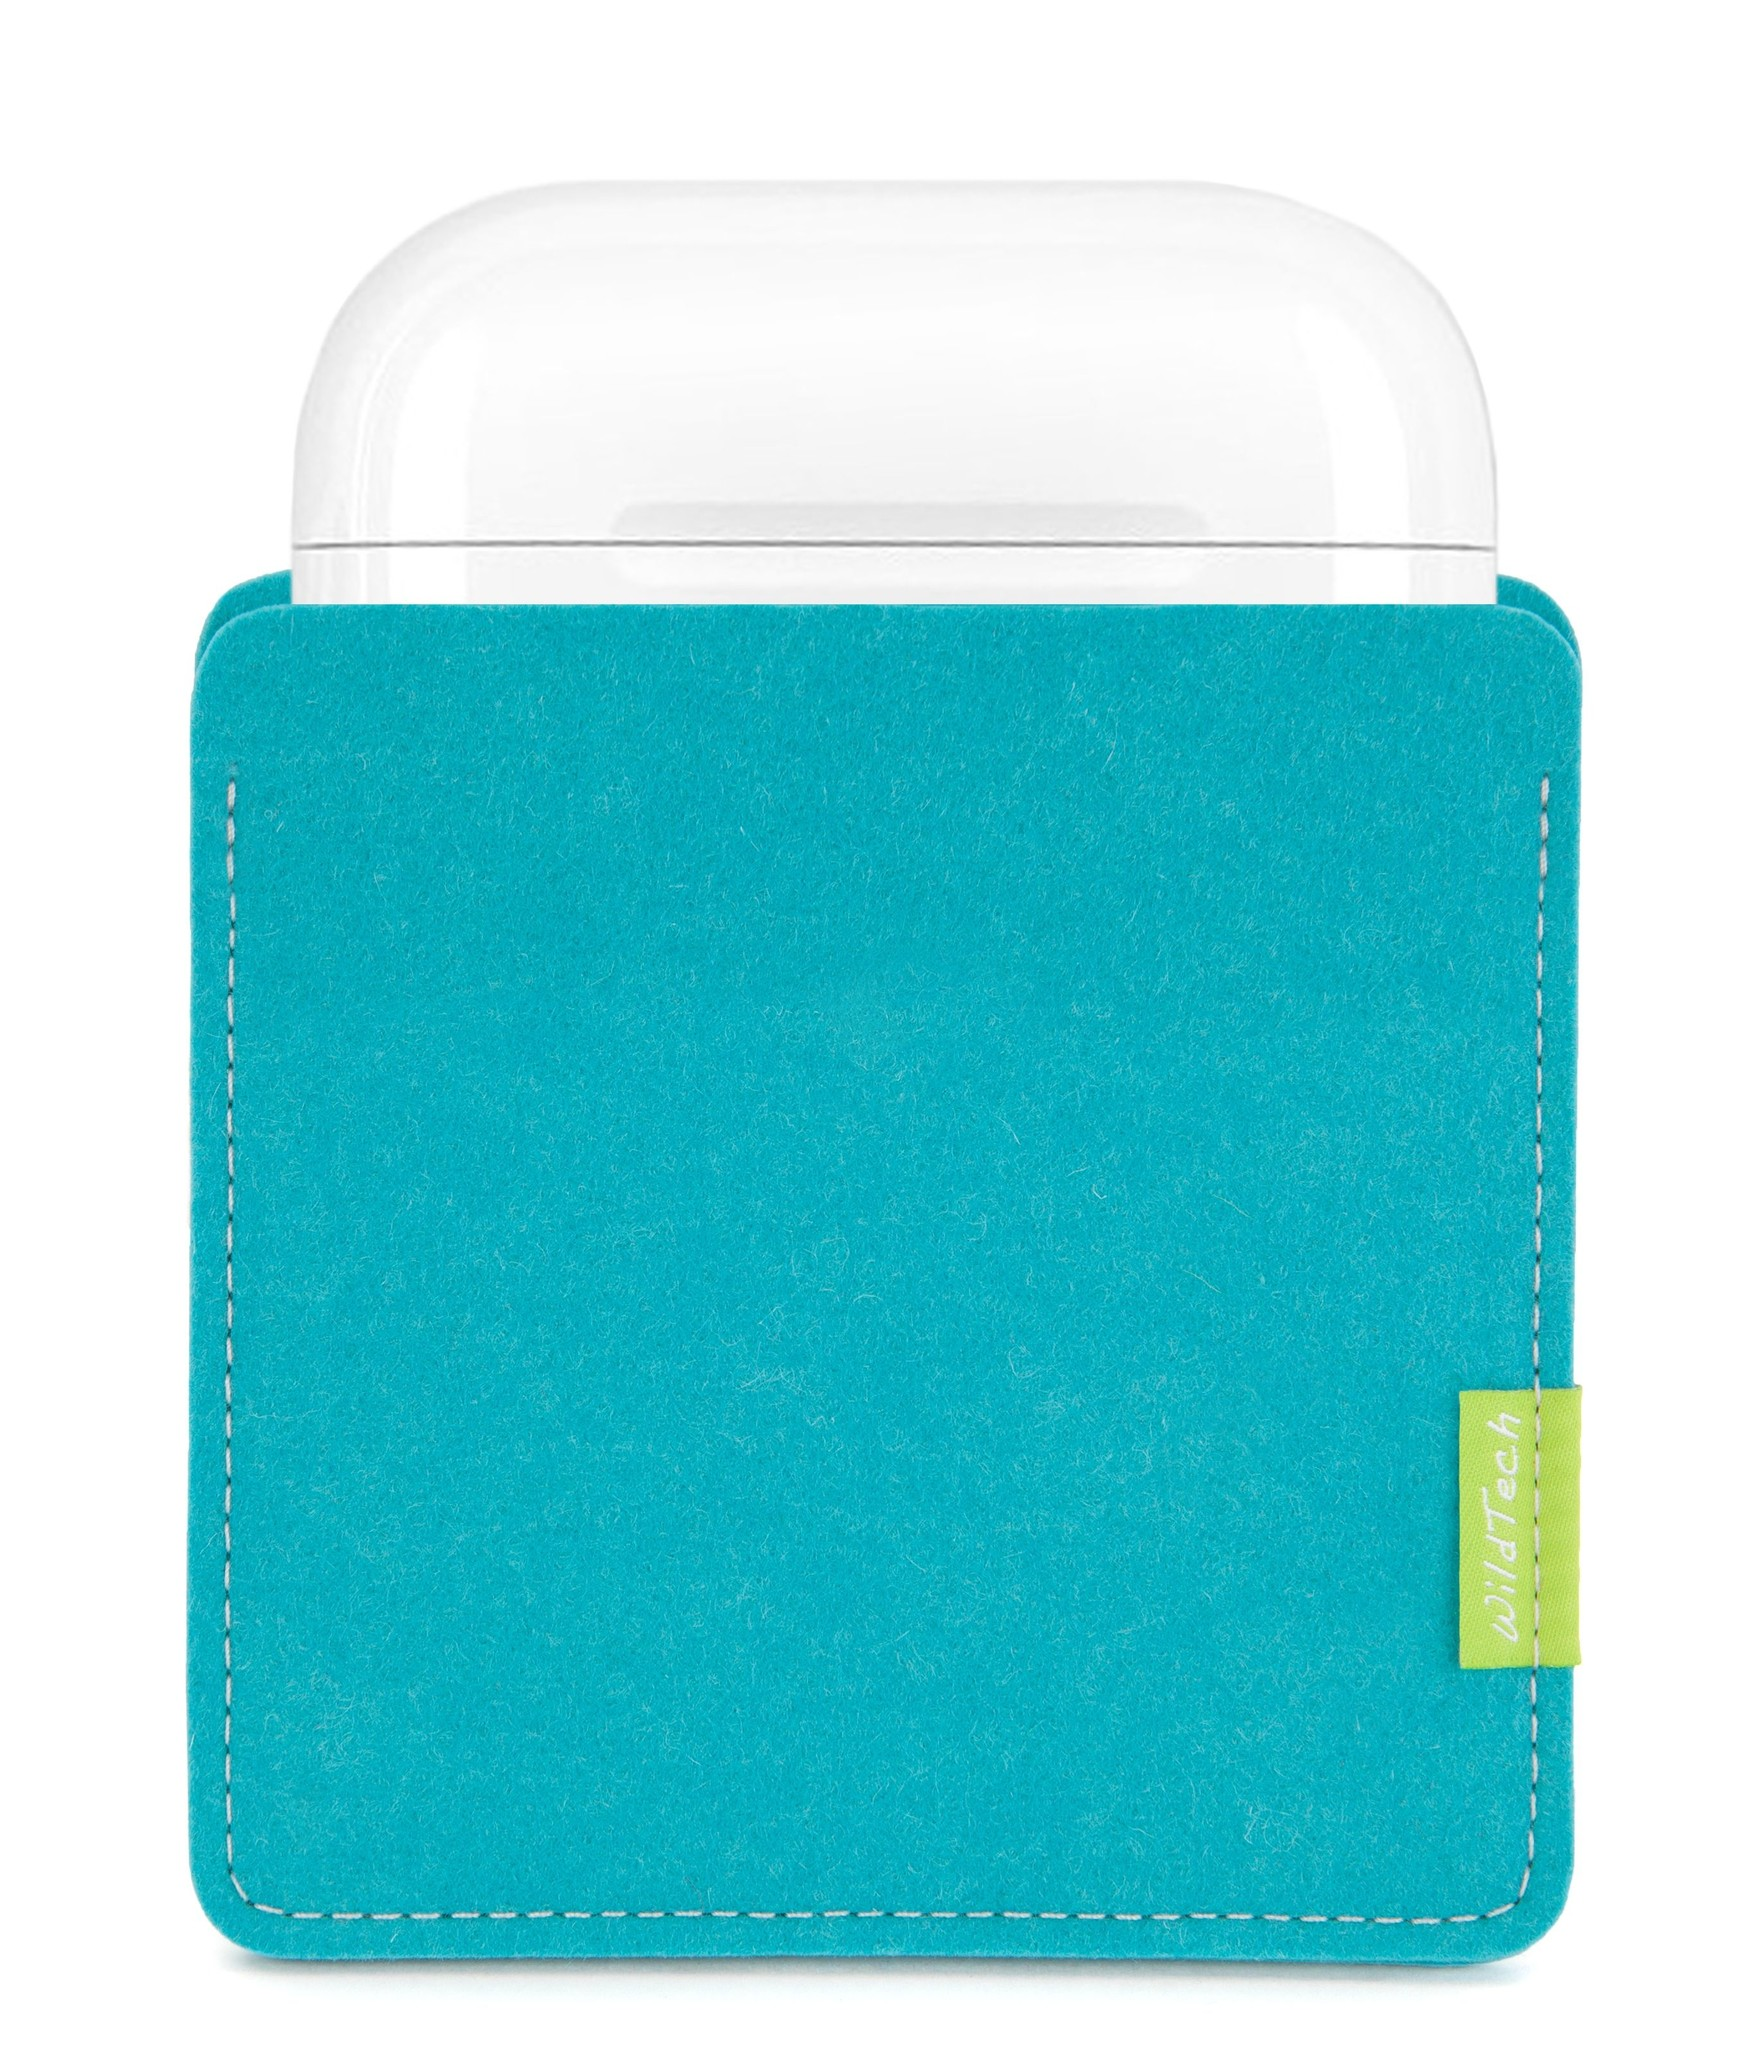 AirPods Sleeve Turquoise-2